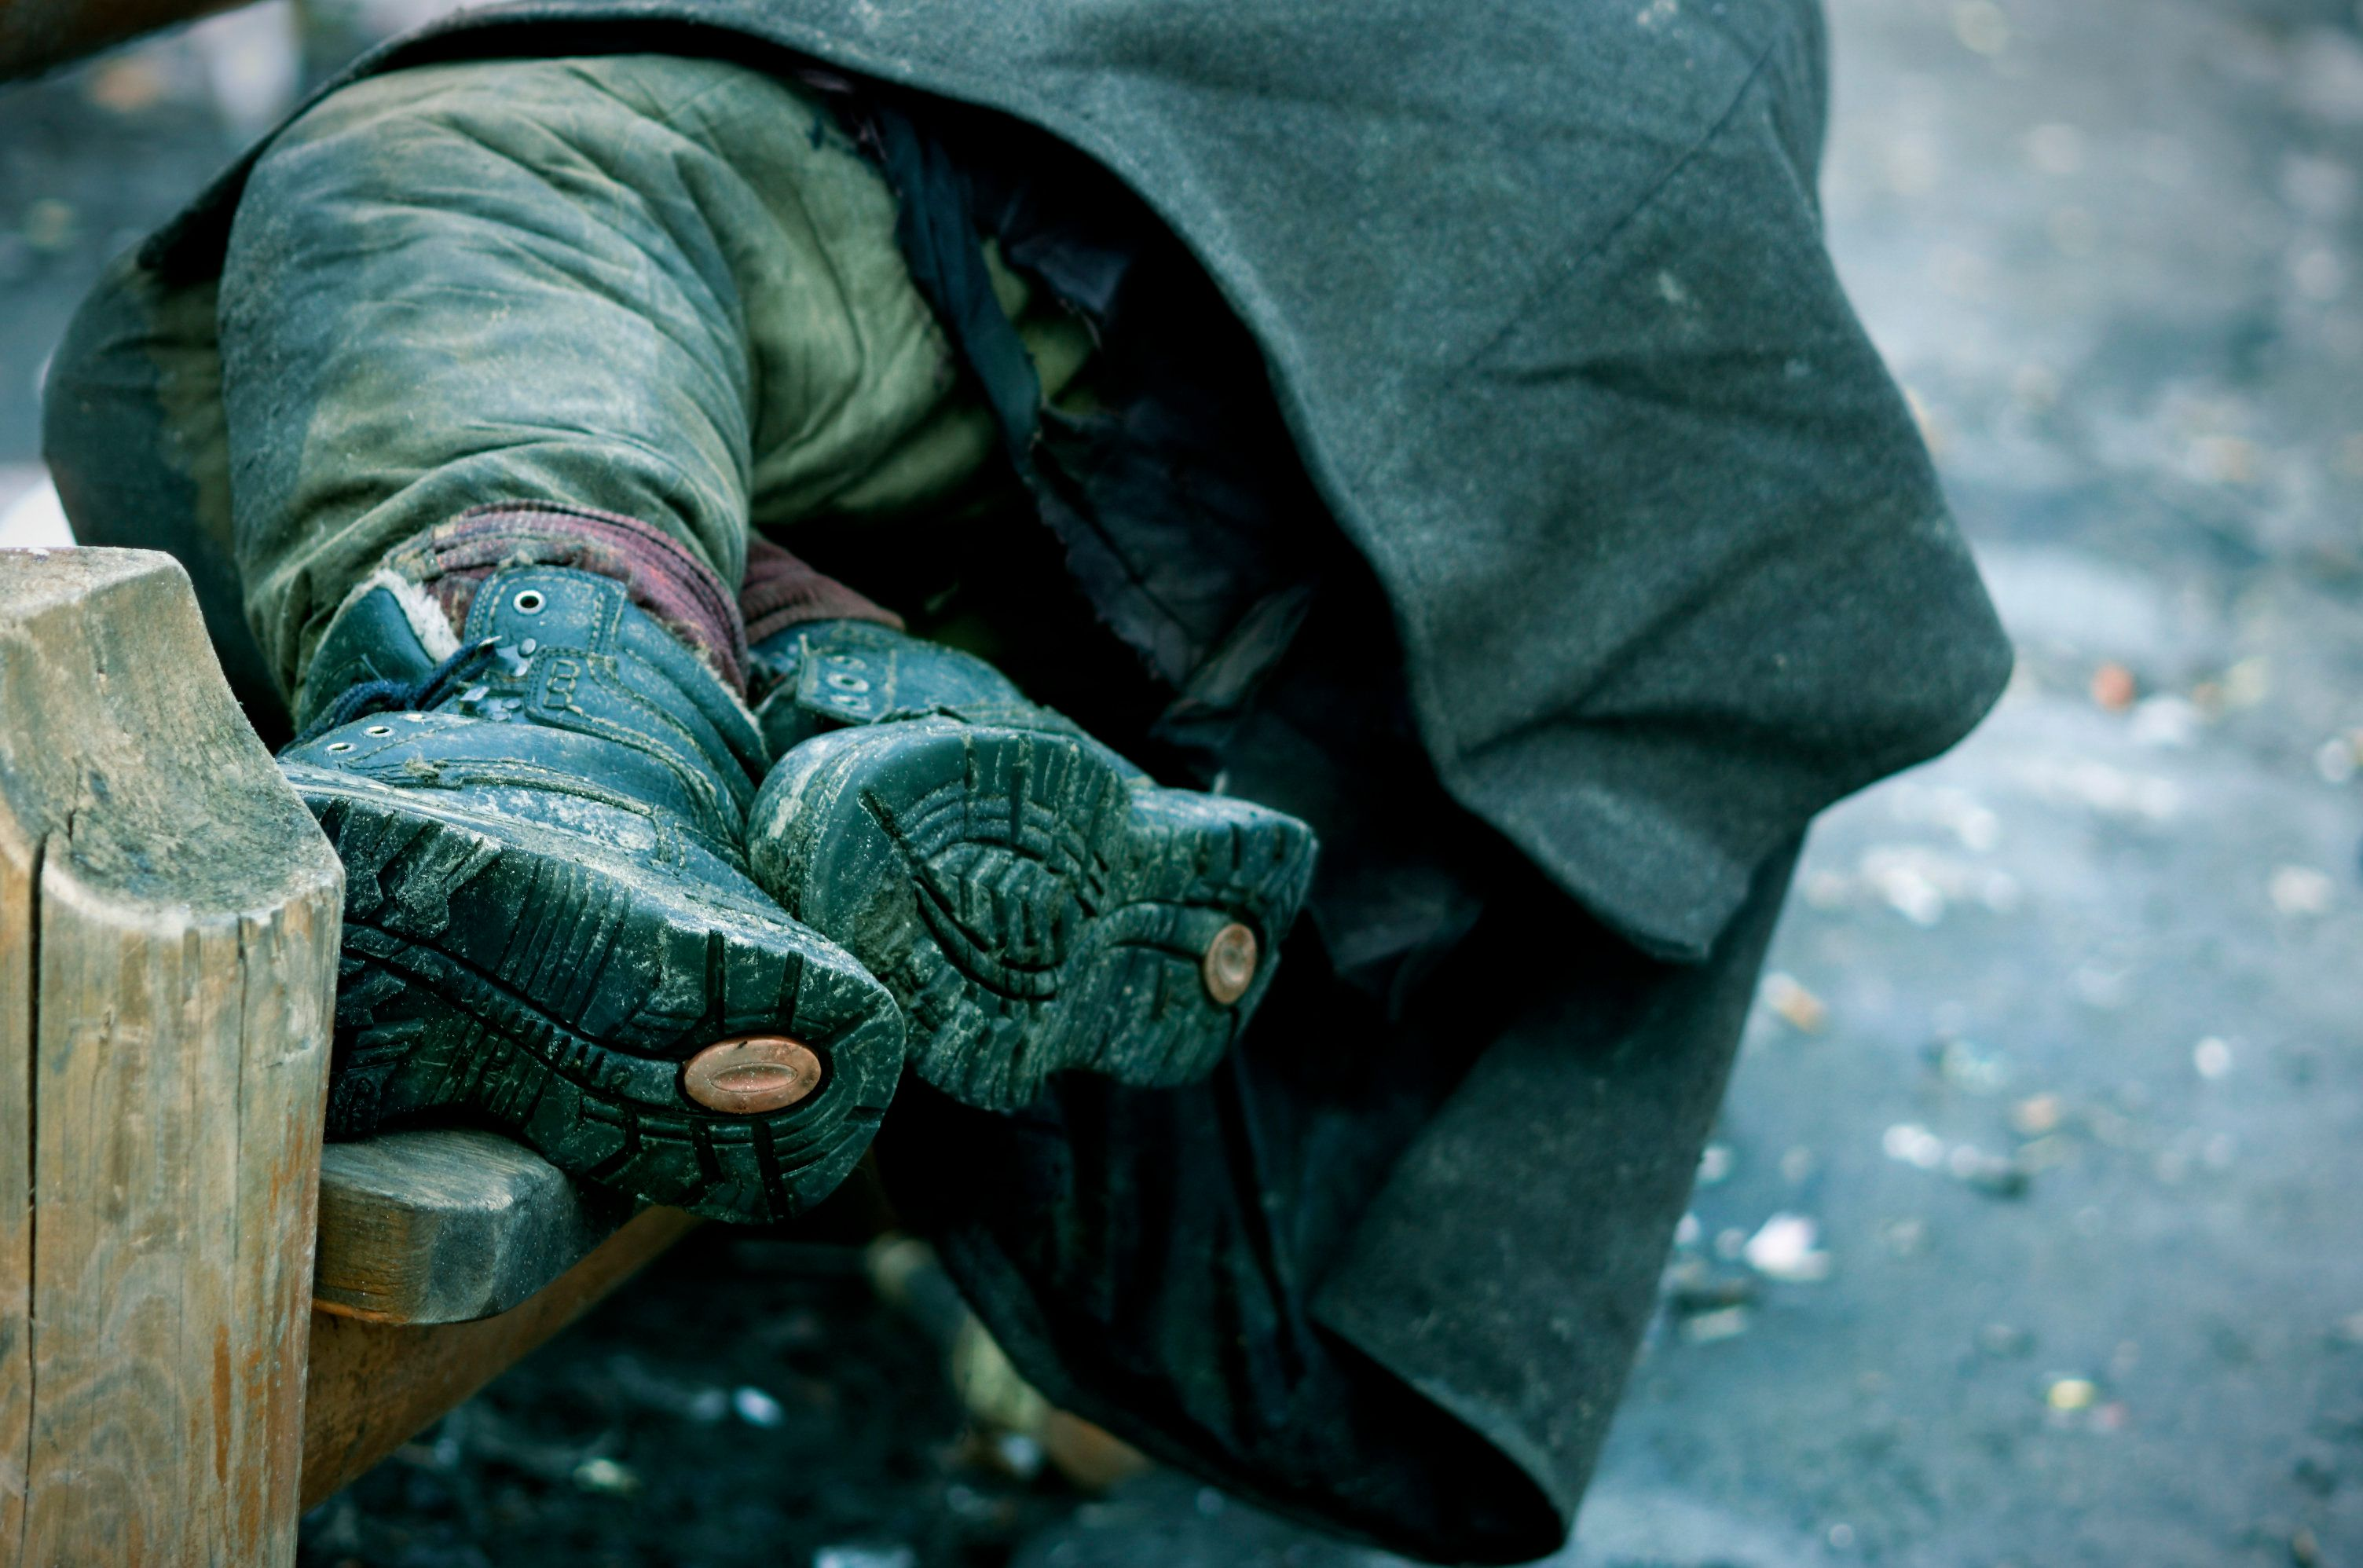 6 Ways You Can Help Homeless People Survive Treacherously Cold Conditions